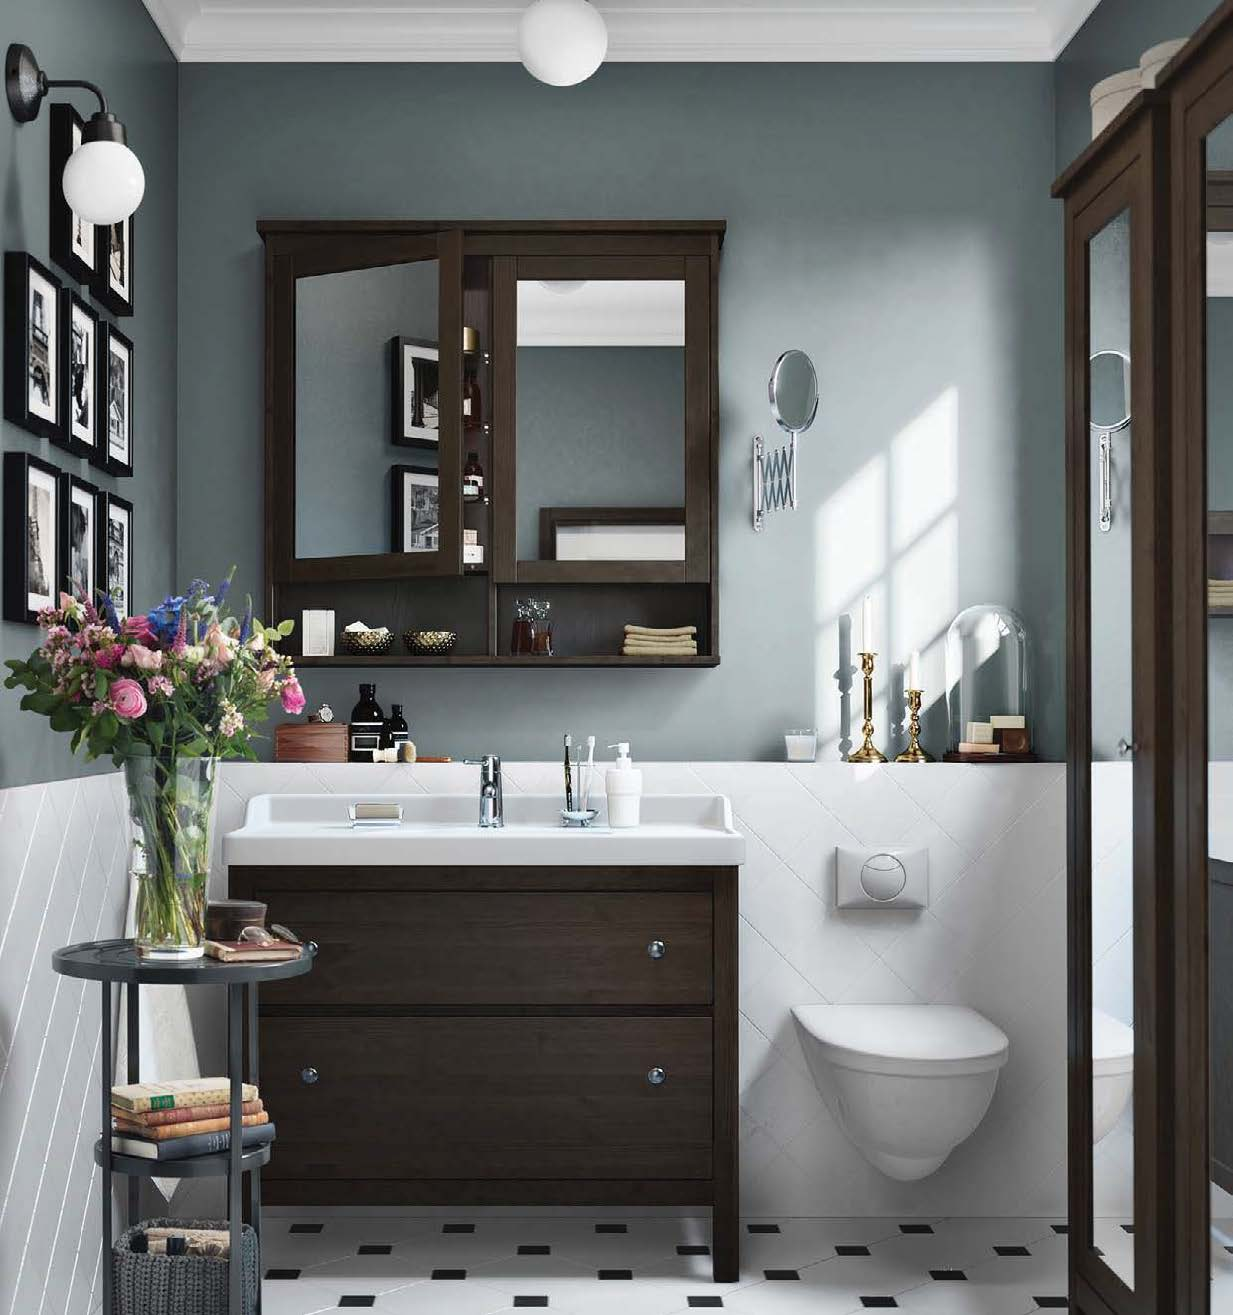 Ikea 2016 catalog for Bathroom remodel 2015